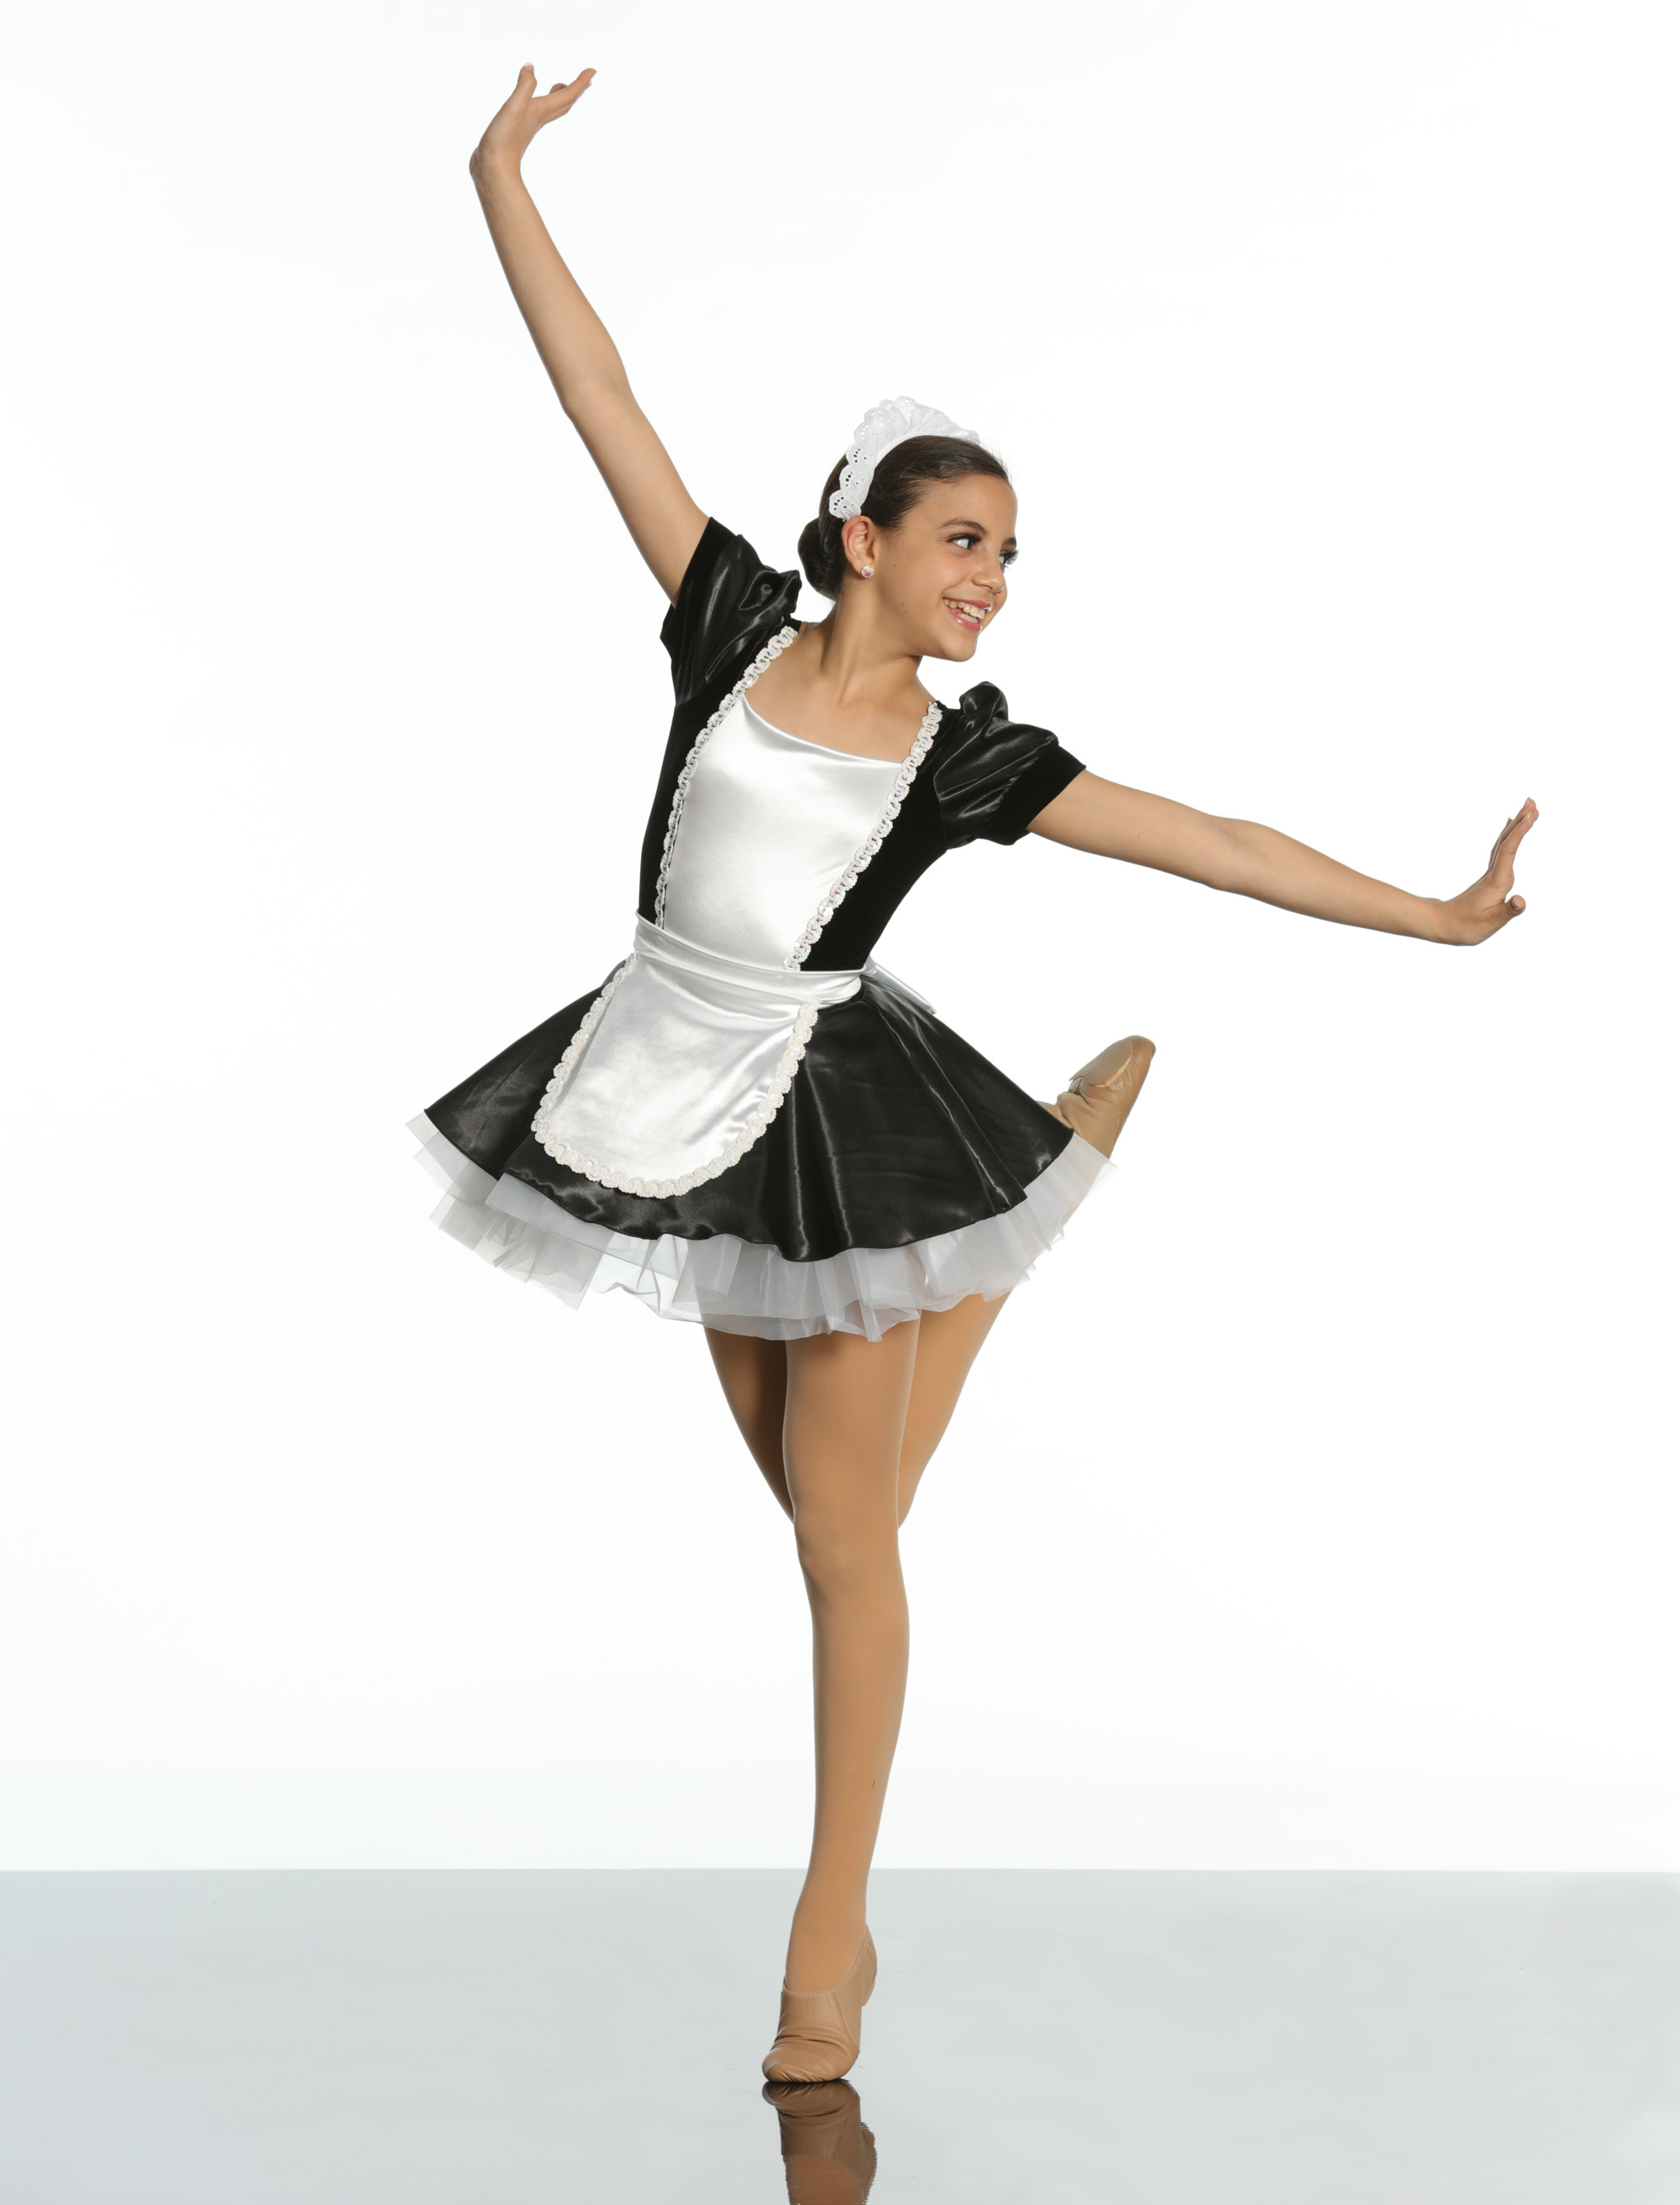 90a3df0195e7e Weissman ®, an American costume and dancewear design company, has been  family-owned